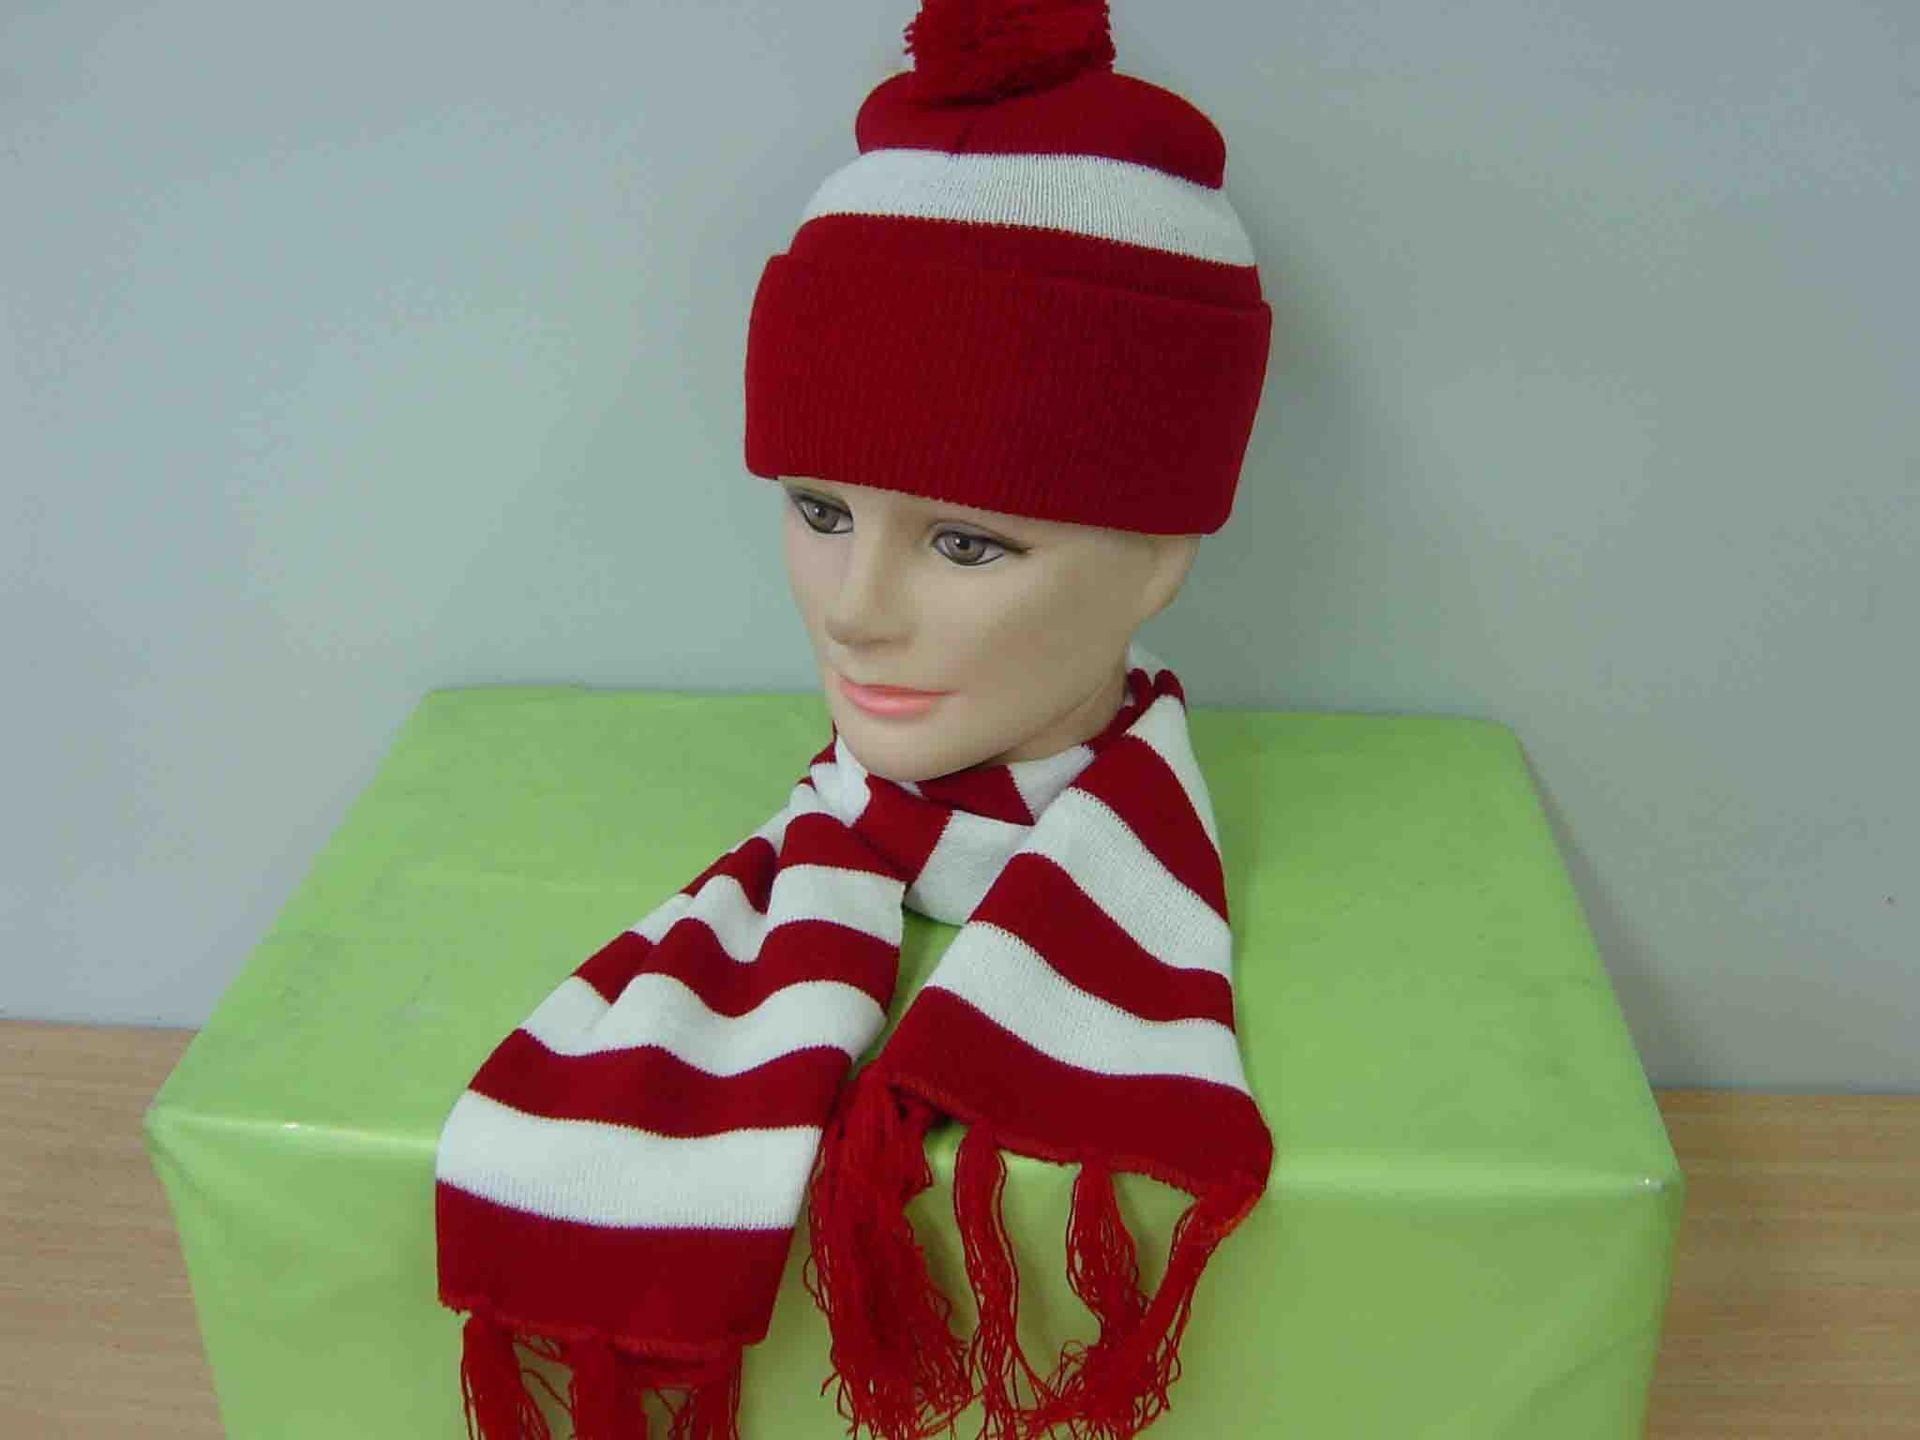 Hat - Wally Red & White Stripe Beanie w/Scarf